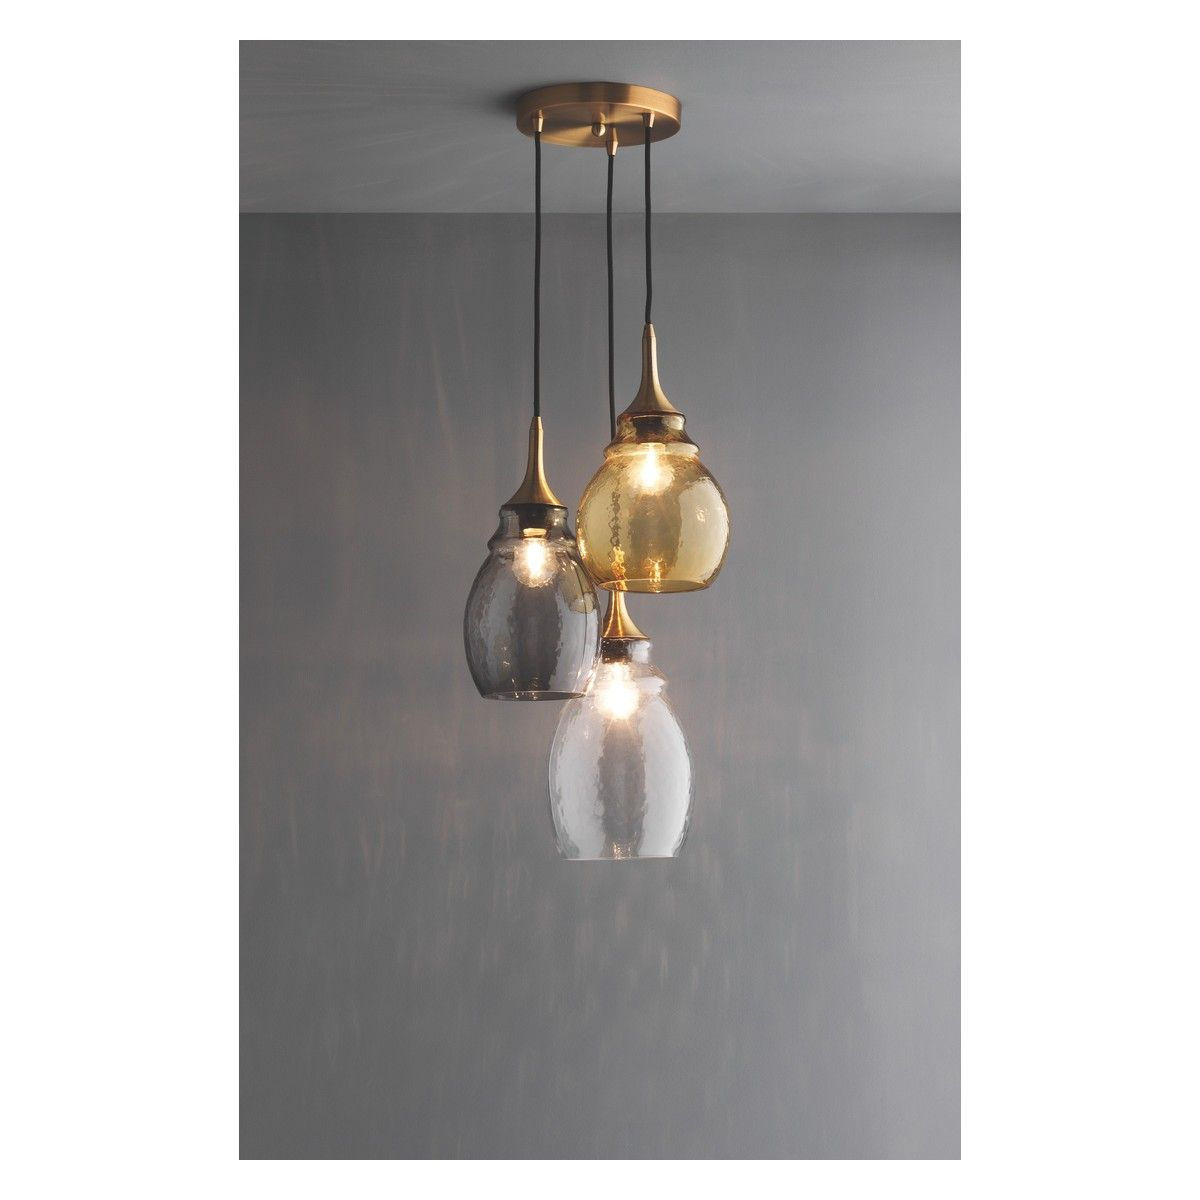 Cinders cinders tinted glass triple drop ceiling light buy now cinders cinders tinted glass triple drop ceiling light buy now at habitat uk mozeypictures Gallery